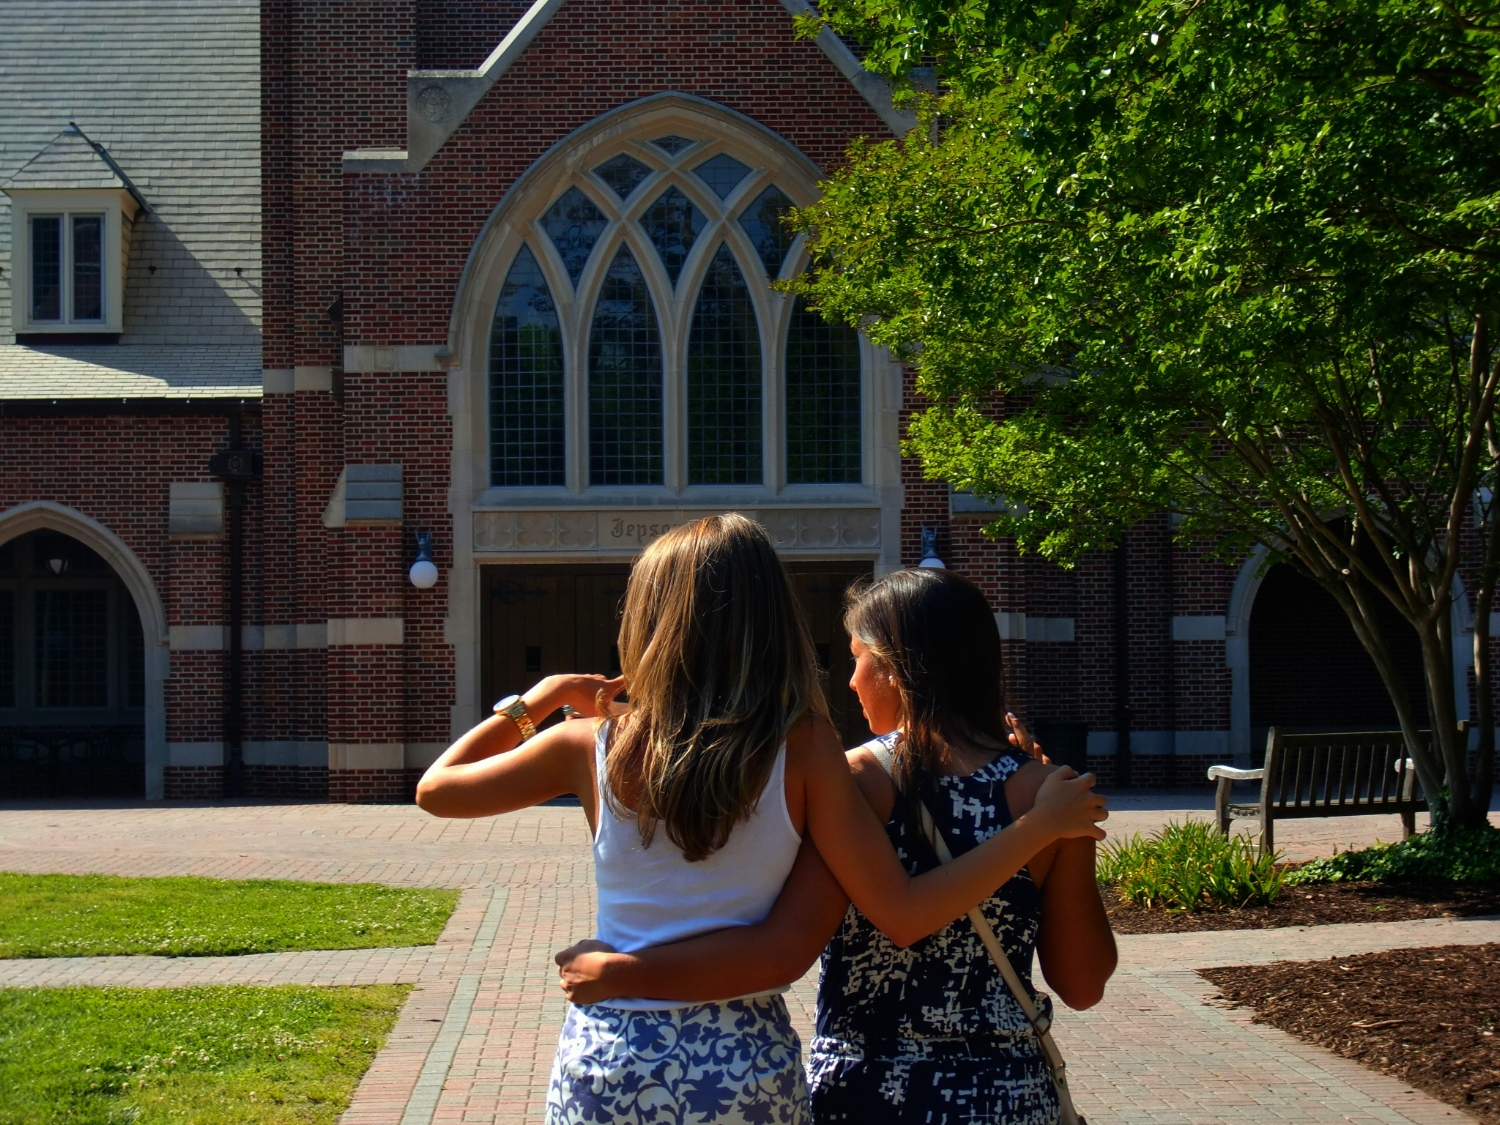 This is one of my favorite pics of Brielle and Aubrey taken on graduation weekend in May of 2011.Brielle took Aubrey around the University of Richmond campus and showed her everything from her own point of view after spending four years on this beautiful campus. Aubrey would begin her studies at the University of Richmond in the fall of 2011 as a student athlete and play for the Richmond Spiders Field Hockey team.